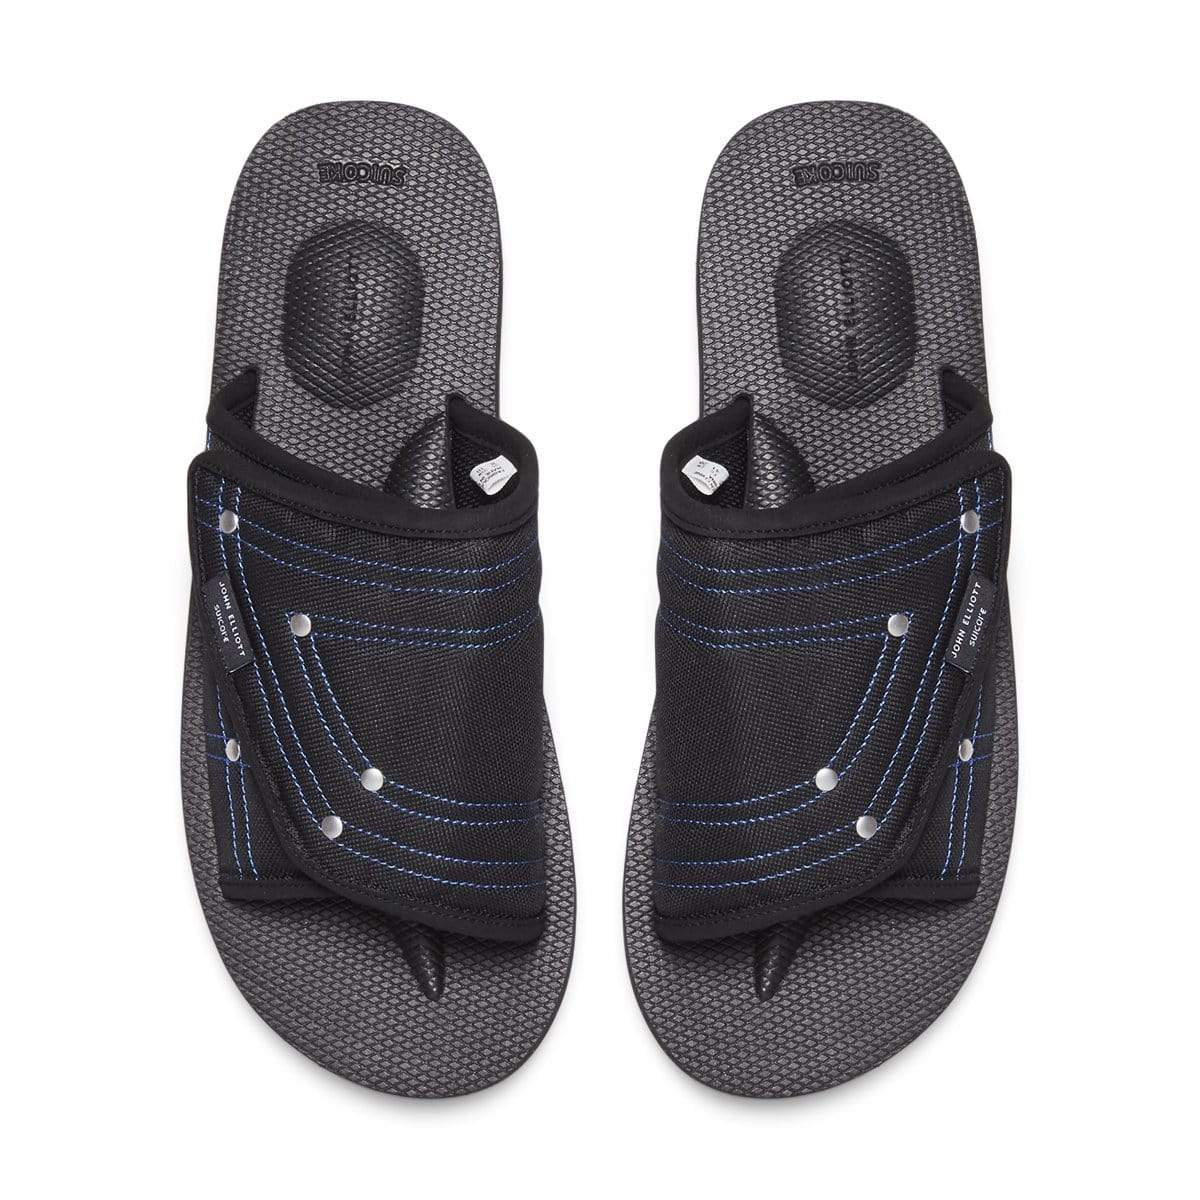 Suicoke Shoes x John Elliott SAW-CAB-B